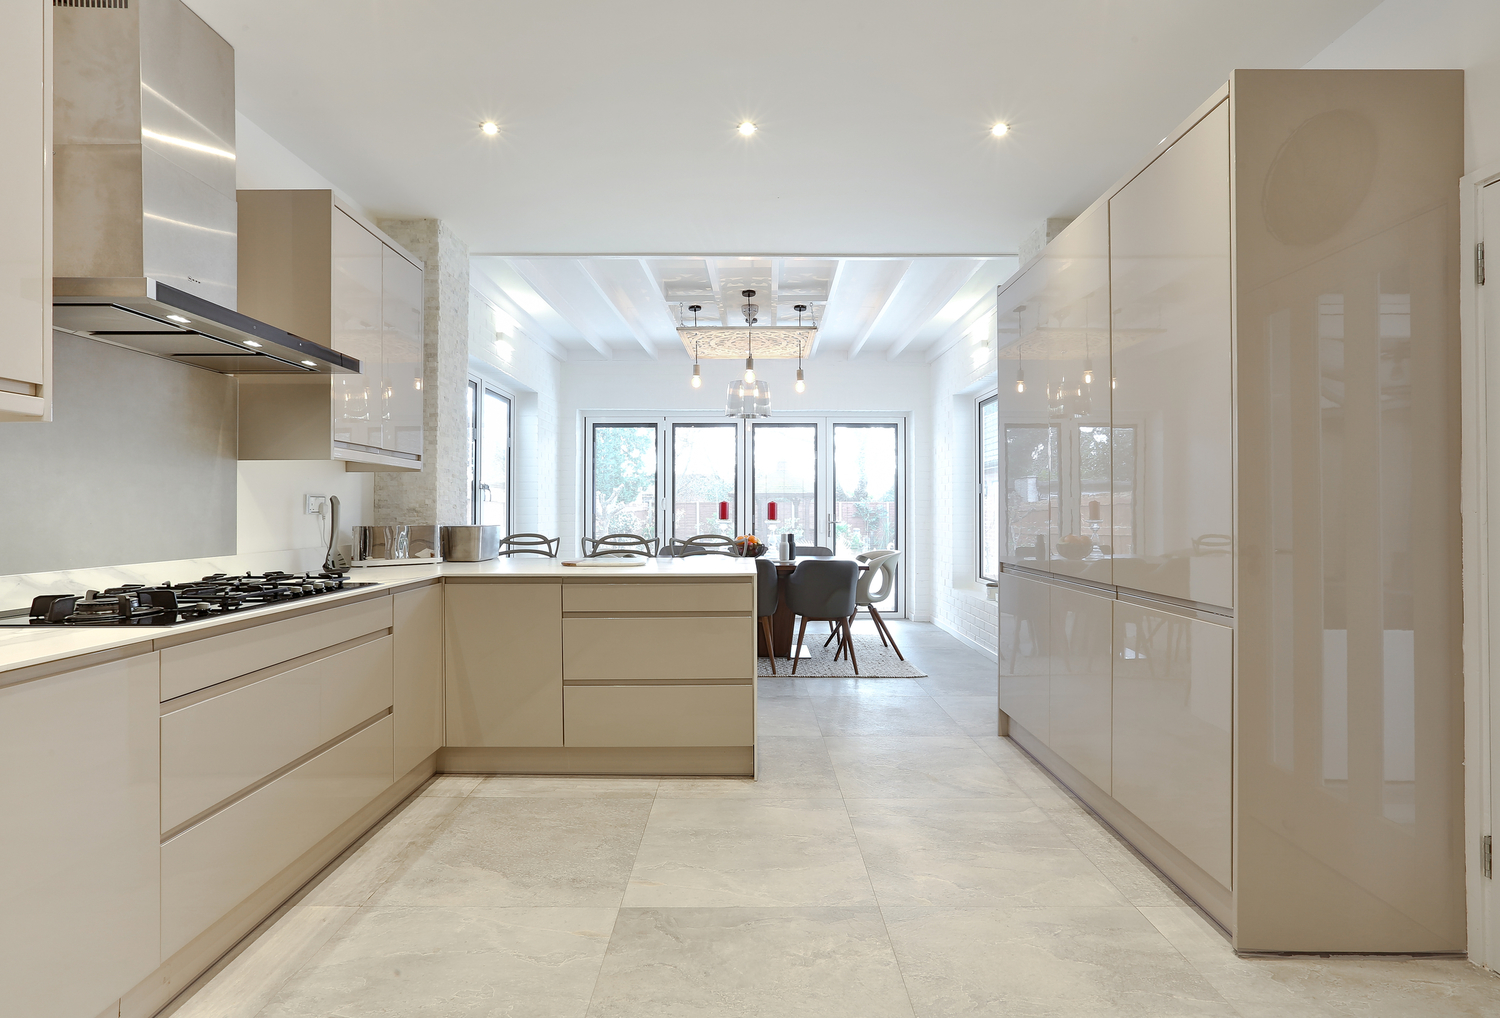 Low voltage halogen lights in our East London kitchen extension to provide a warm white light